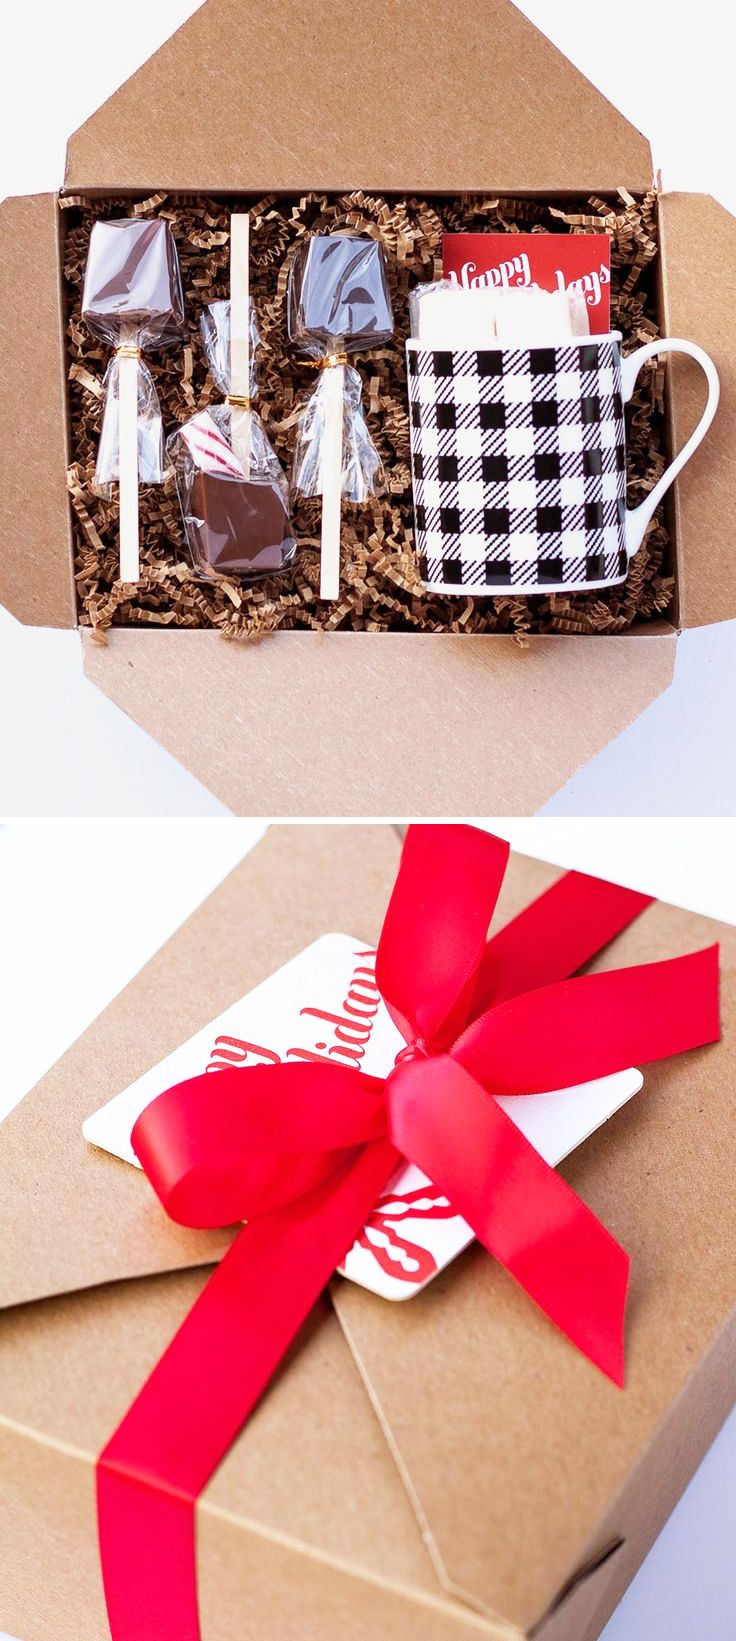 Gift Idea!!! Plaid Mug, Hot Cocoa Sticks, Greeting Card, and any other goodies they would like!